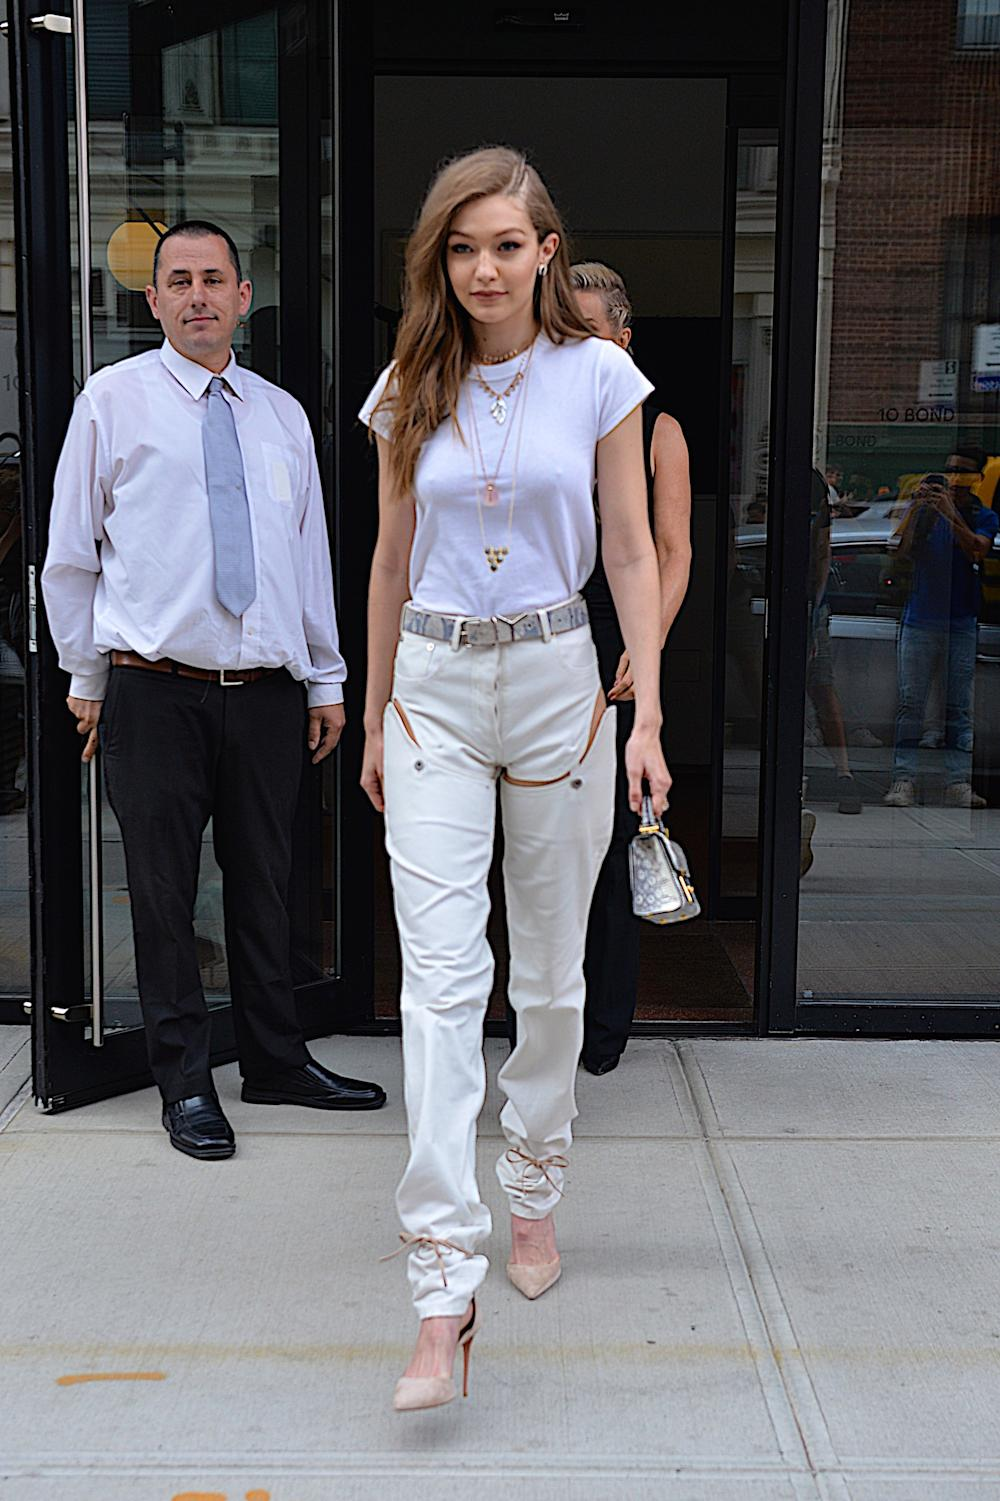 """Hadid wearing<a href=""""https://www.openingceremony.com/womens/y_project/washed-cut-out-detachable-short-jeans-ST96198.html"""" target=""""_blank"""" data-beacon=""""{""""p"""":{""""lnid"""":""""$332 detachable cut-out side"""",""""mpid"""":2,""""plid"""":""""https://www.openingceremony.com/womens/y_project/washed-cut-out-detachable-short-jeans-ST96198.html""""}}"""" data-beacon-parsed=""""true"""">$332 detachable cut-out side</a>Y/Project jeans are available at Opening Ceremony."""